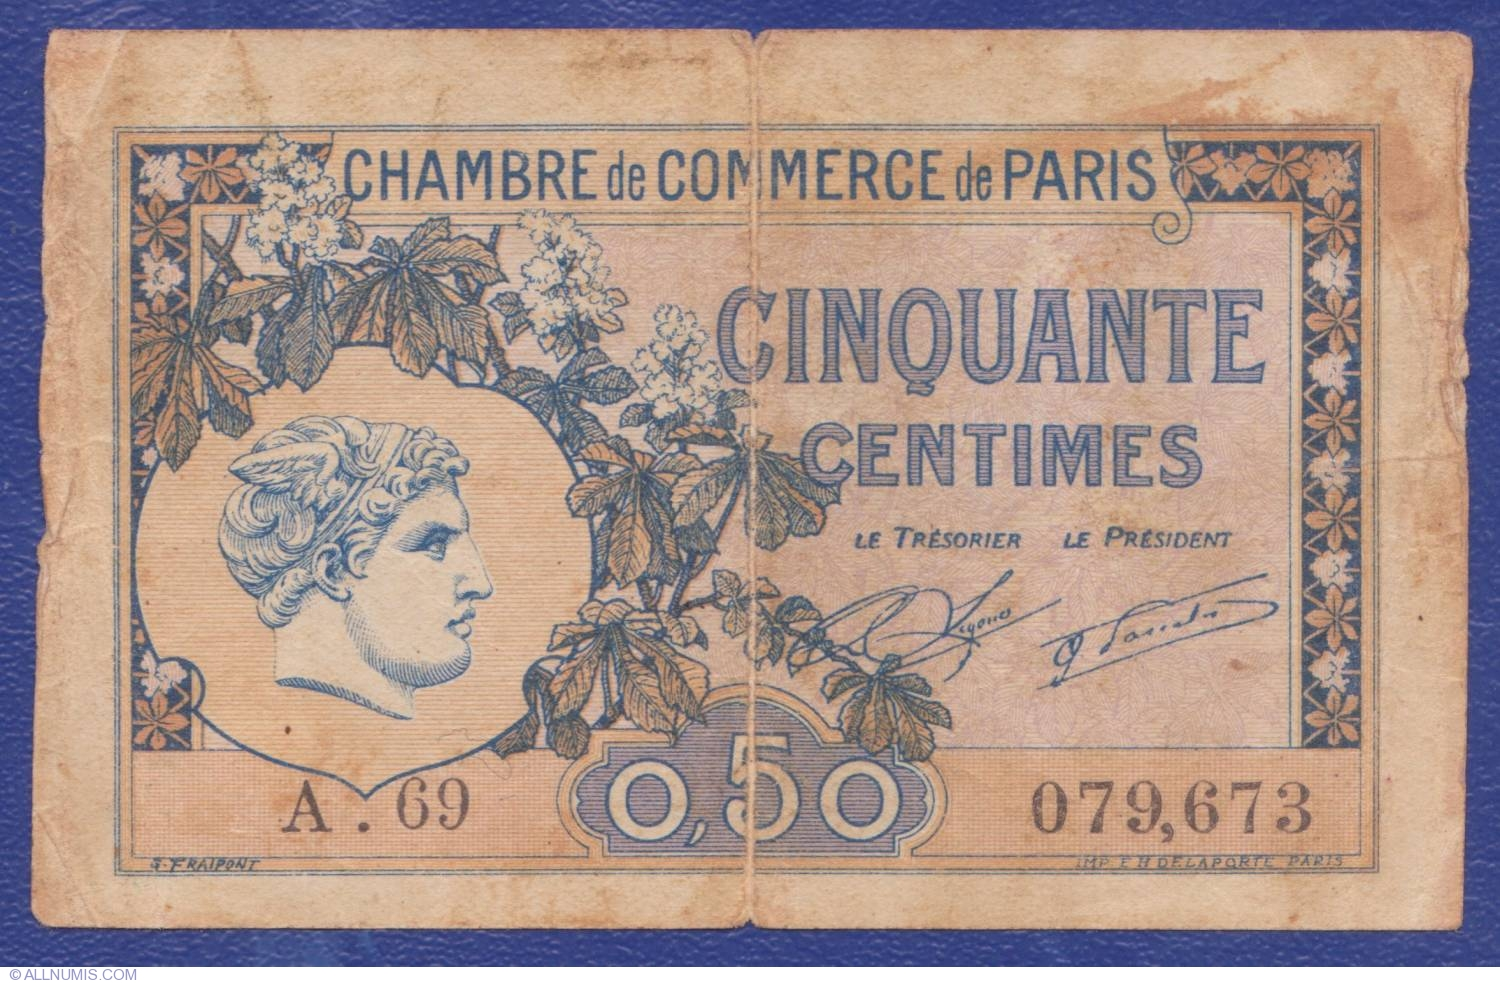 50 centimes 1920 paris chambre de commerce france for Chambre commerce france